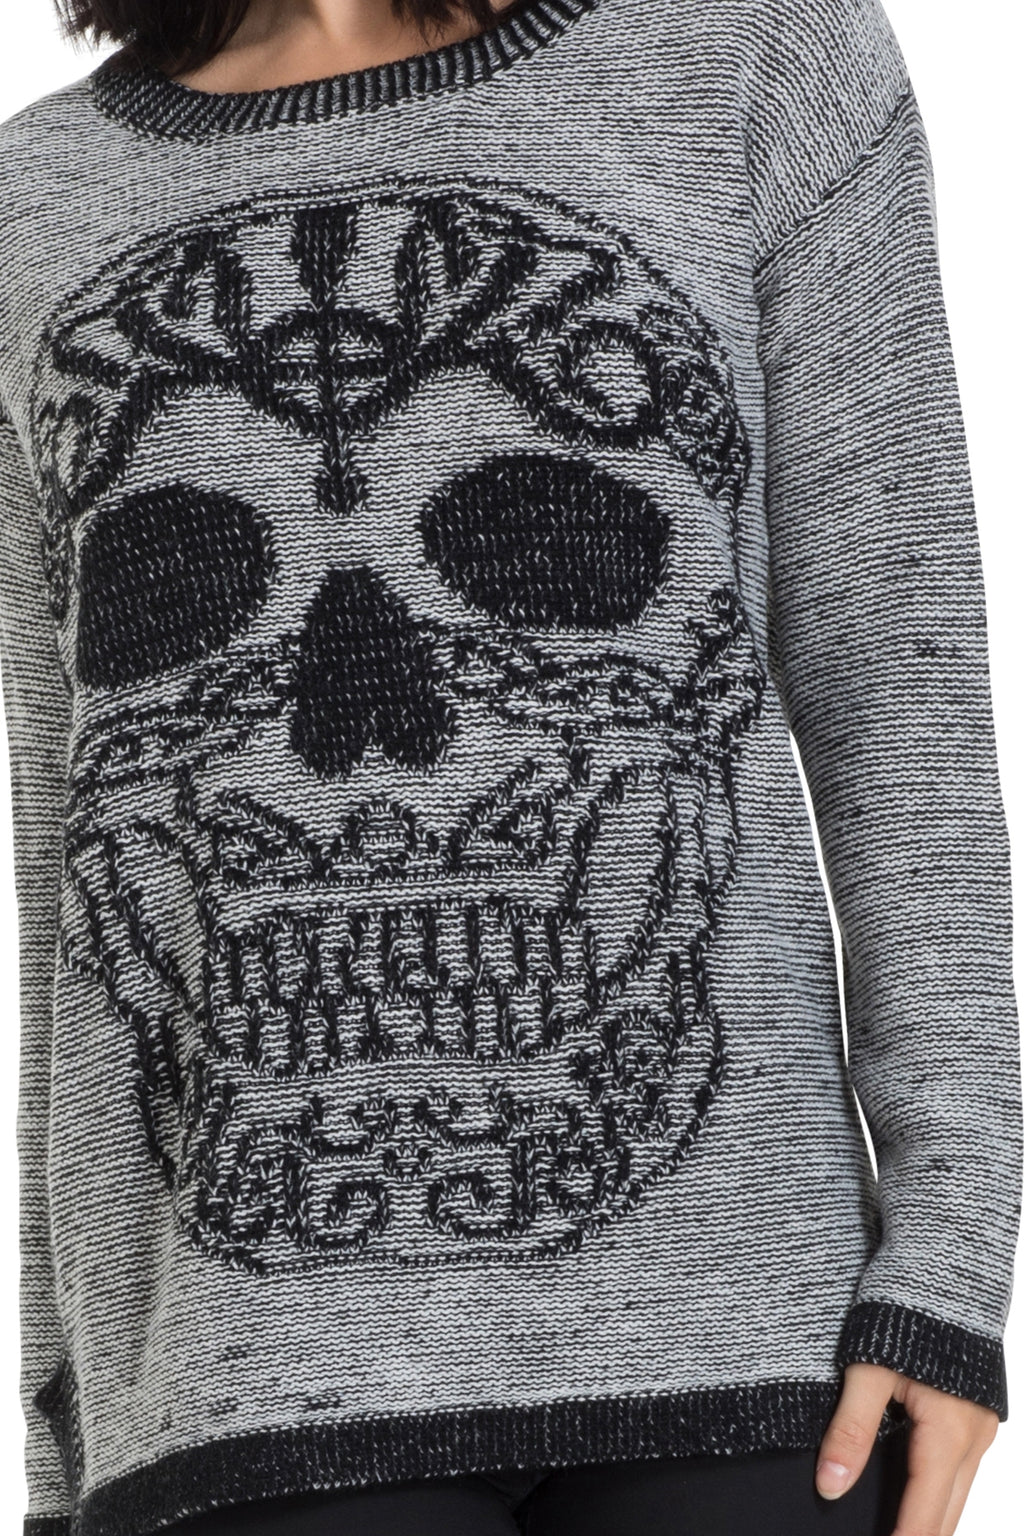 One Direction Celtic Skull Sweater